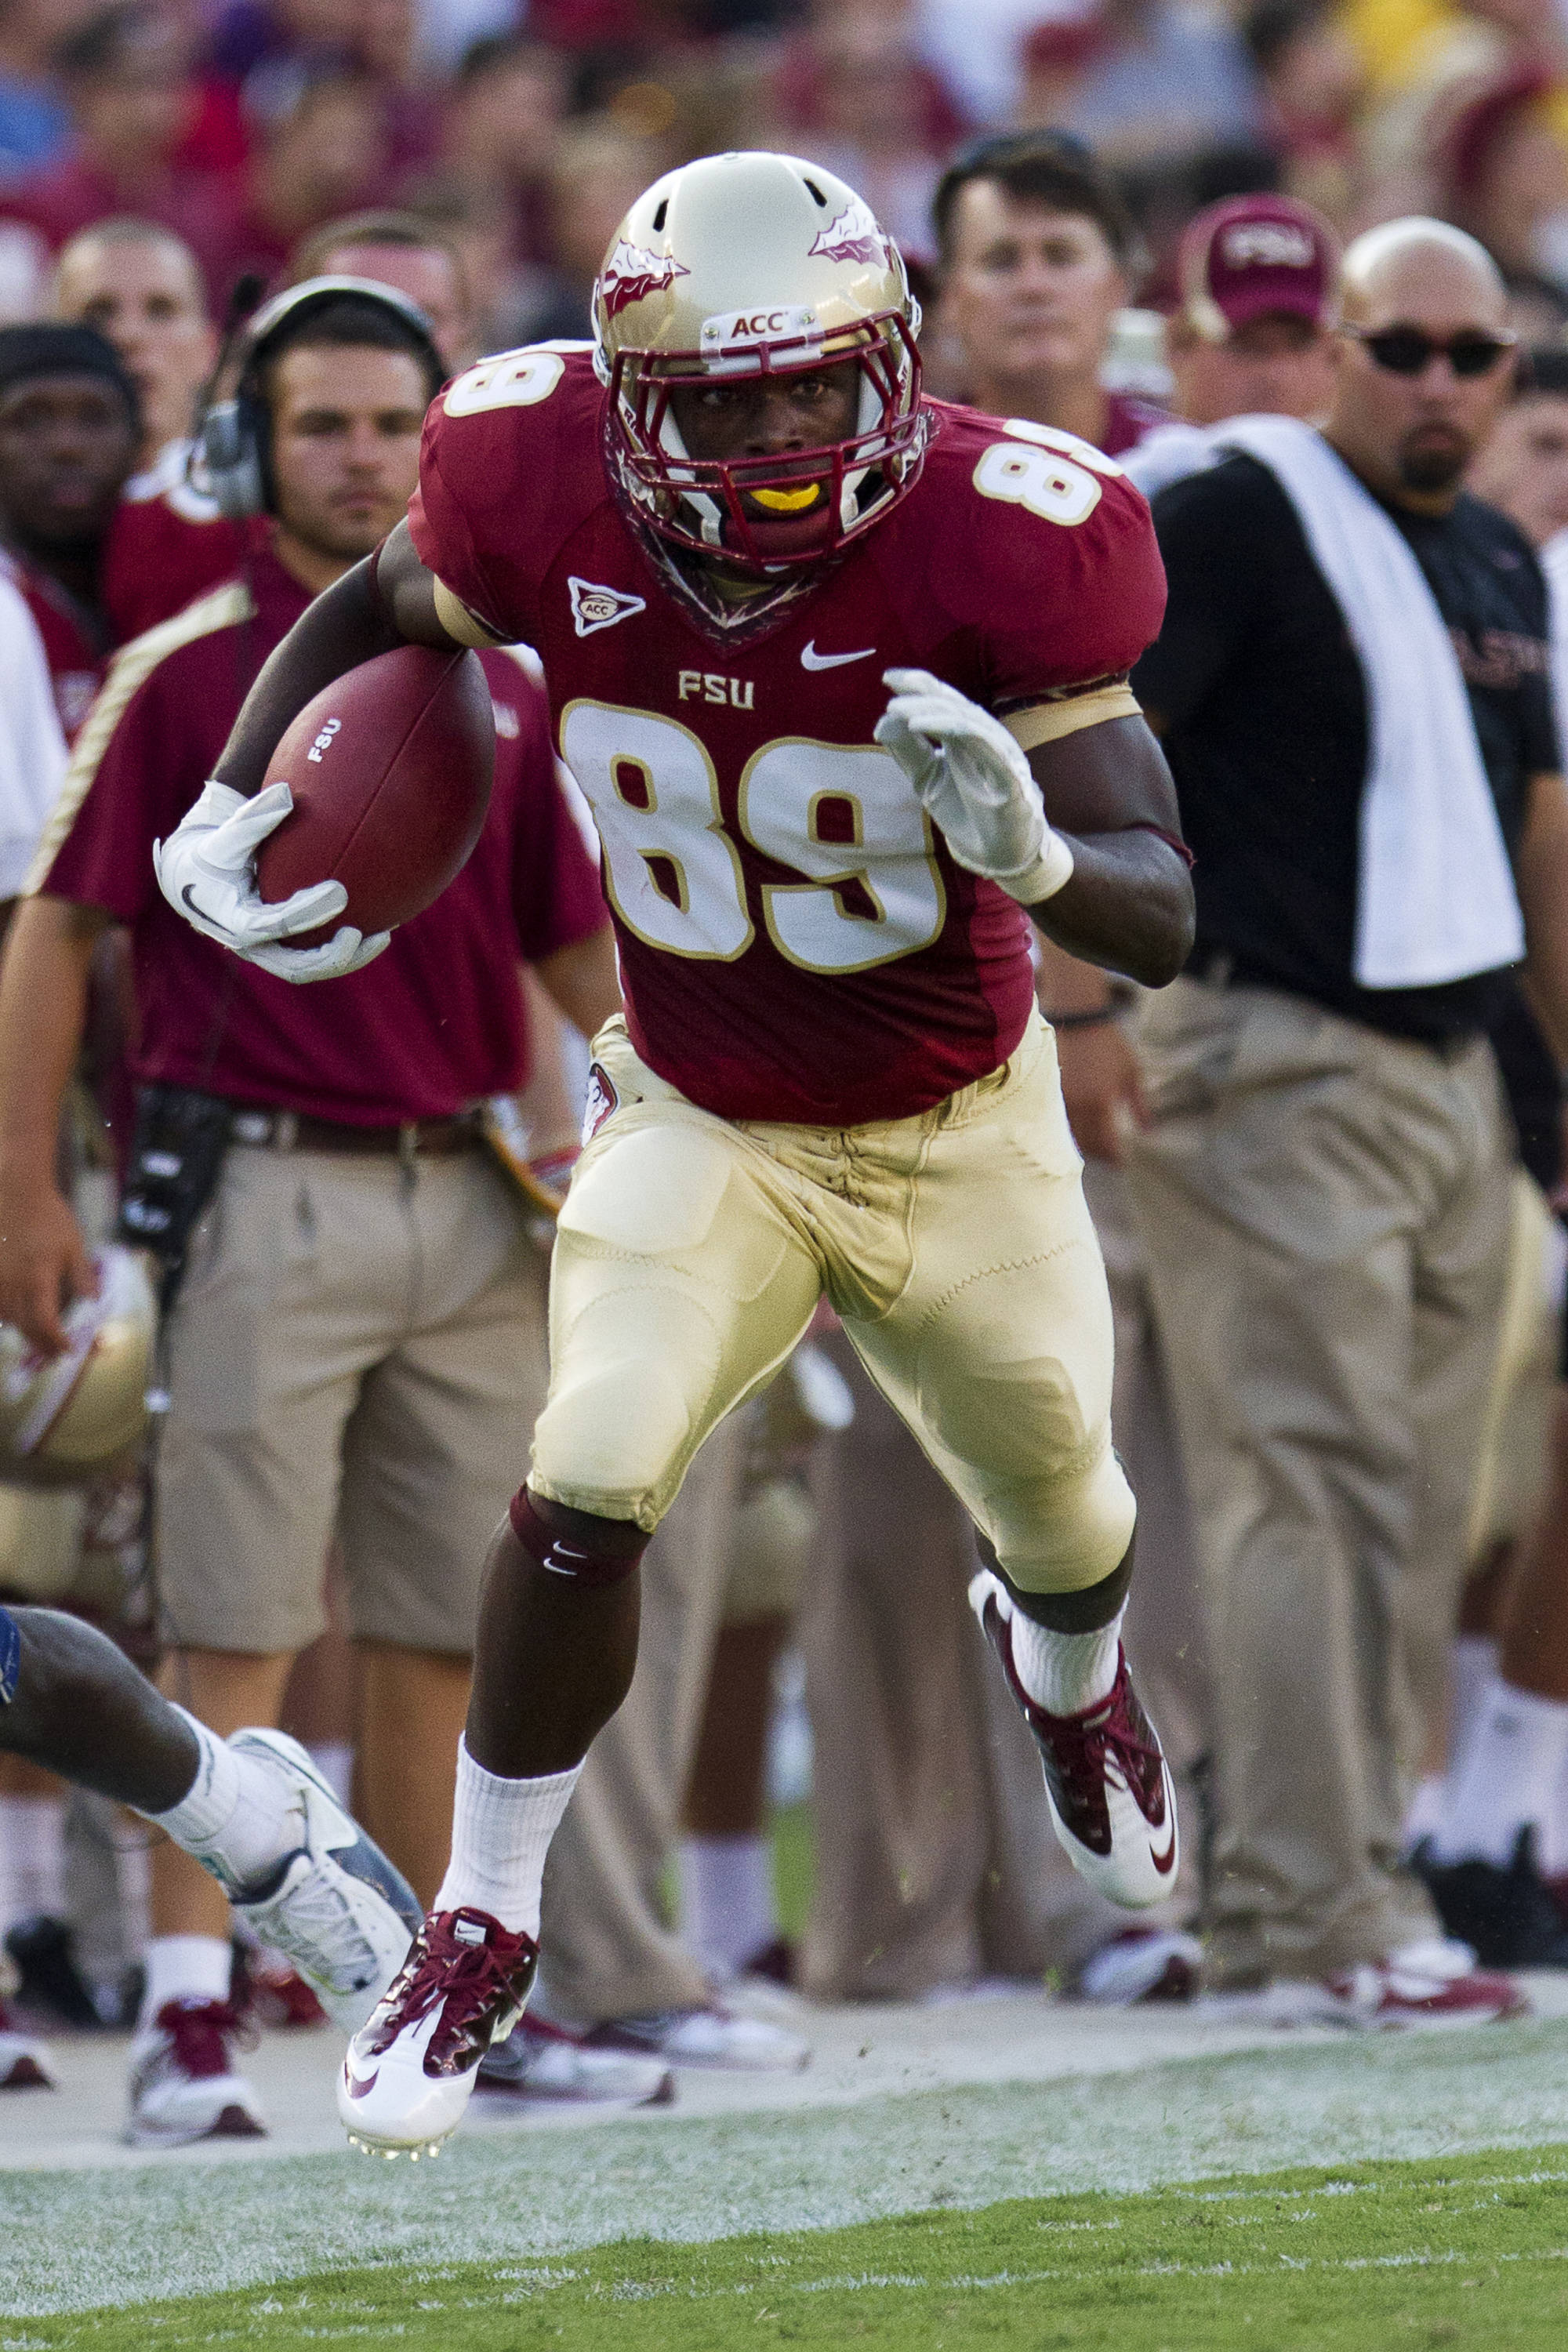 Christian Green (89) carries the ball down the line during the game against CSU on September 10, 2011.